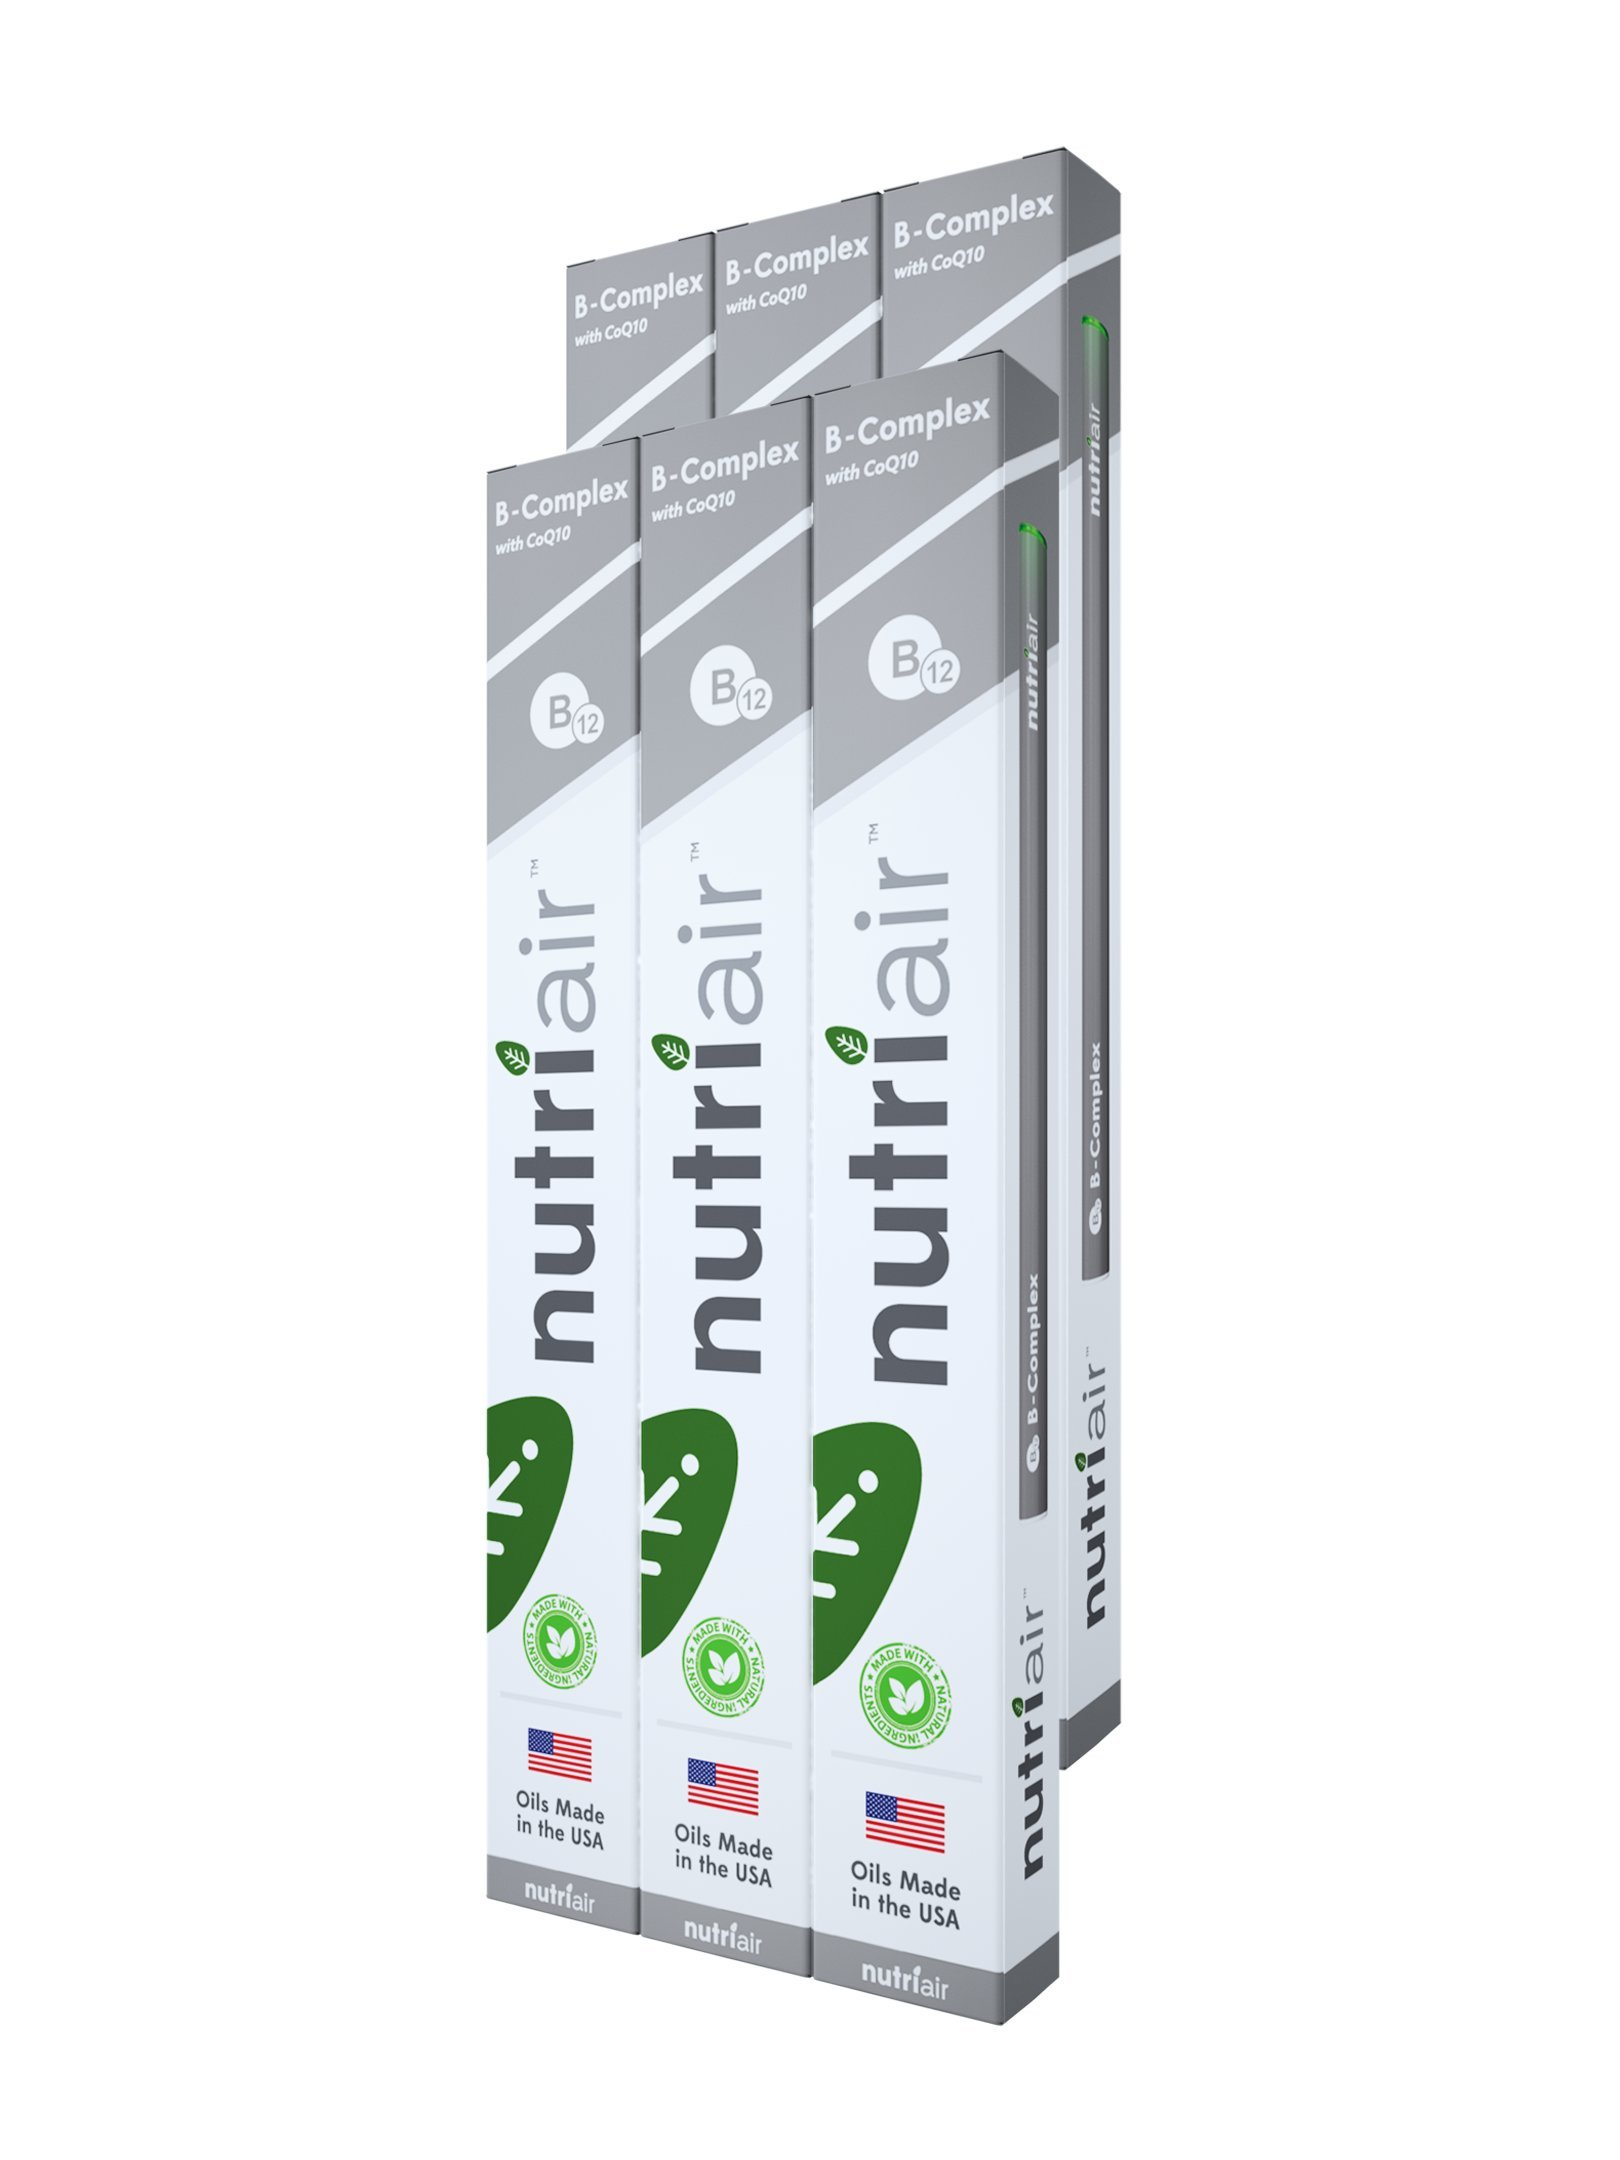 Nutriair B-Complex B12 Inhaler - Nutritional Aromatherapy Pen with CoQ10 - Essential B Vitamin/Energy Supplement - B12, B6, B2, B1 - Nicotine Free, Great Tasting Flavor with NO Calories - (6 Pack) by Nutriair